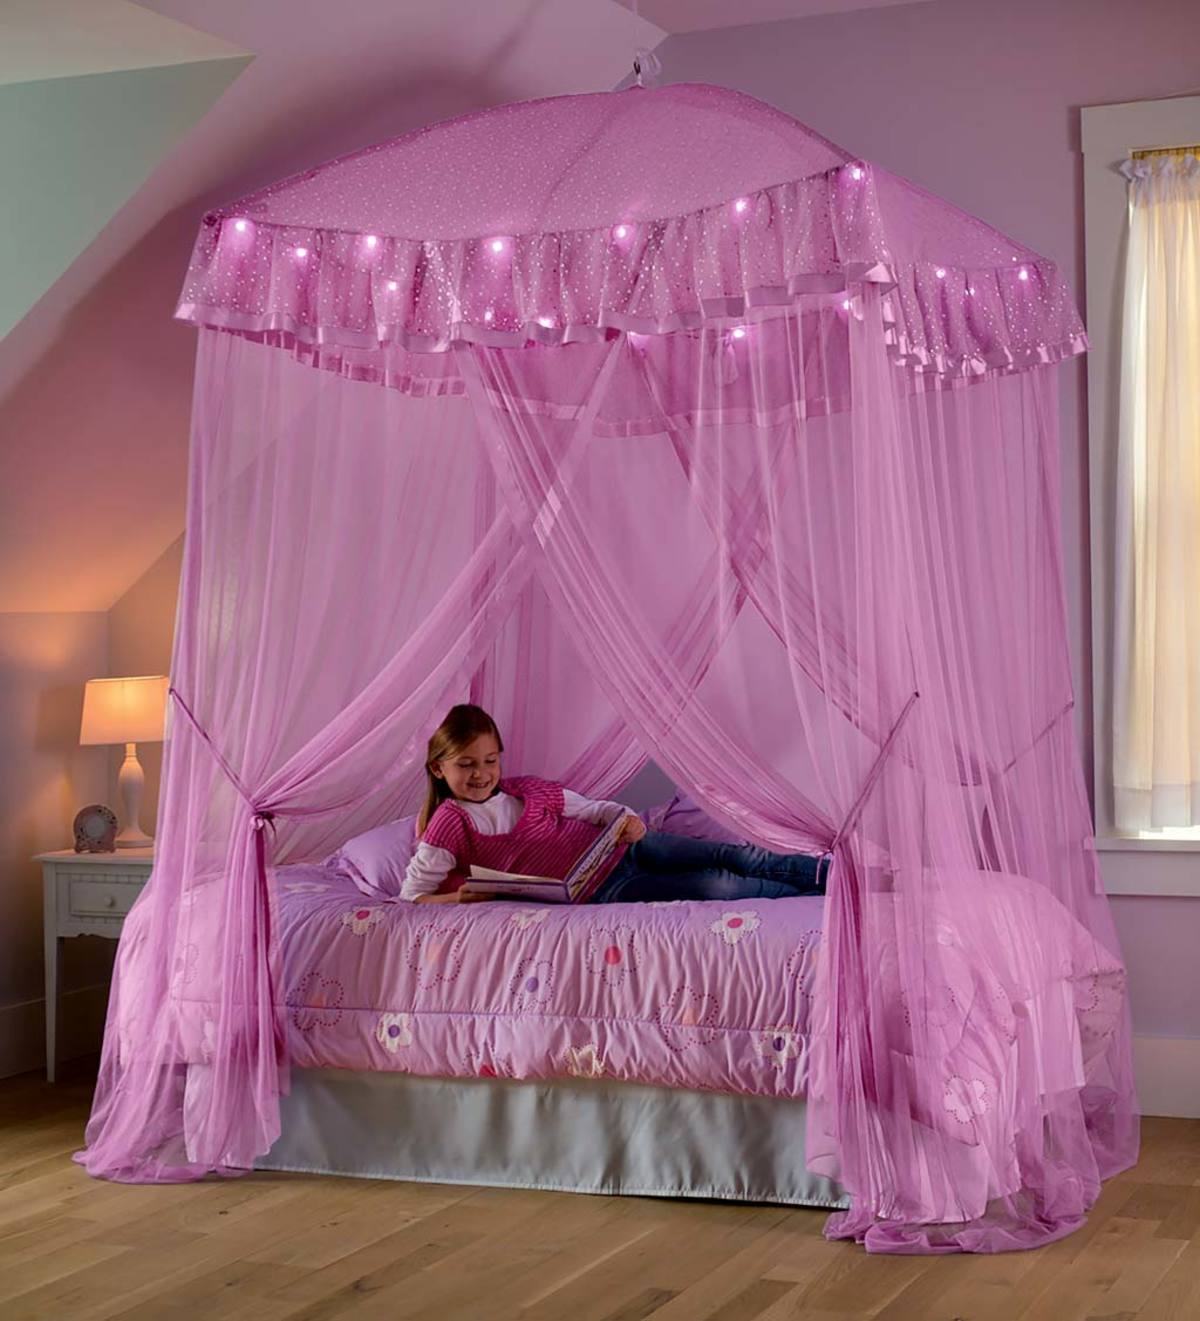 Sparkling Lights Light-Up Bed Canopy - Pink   HearthSong